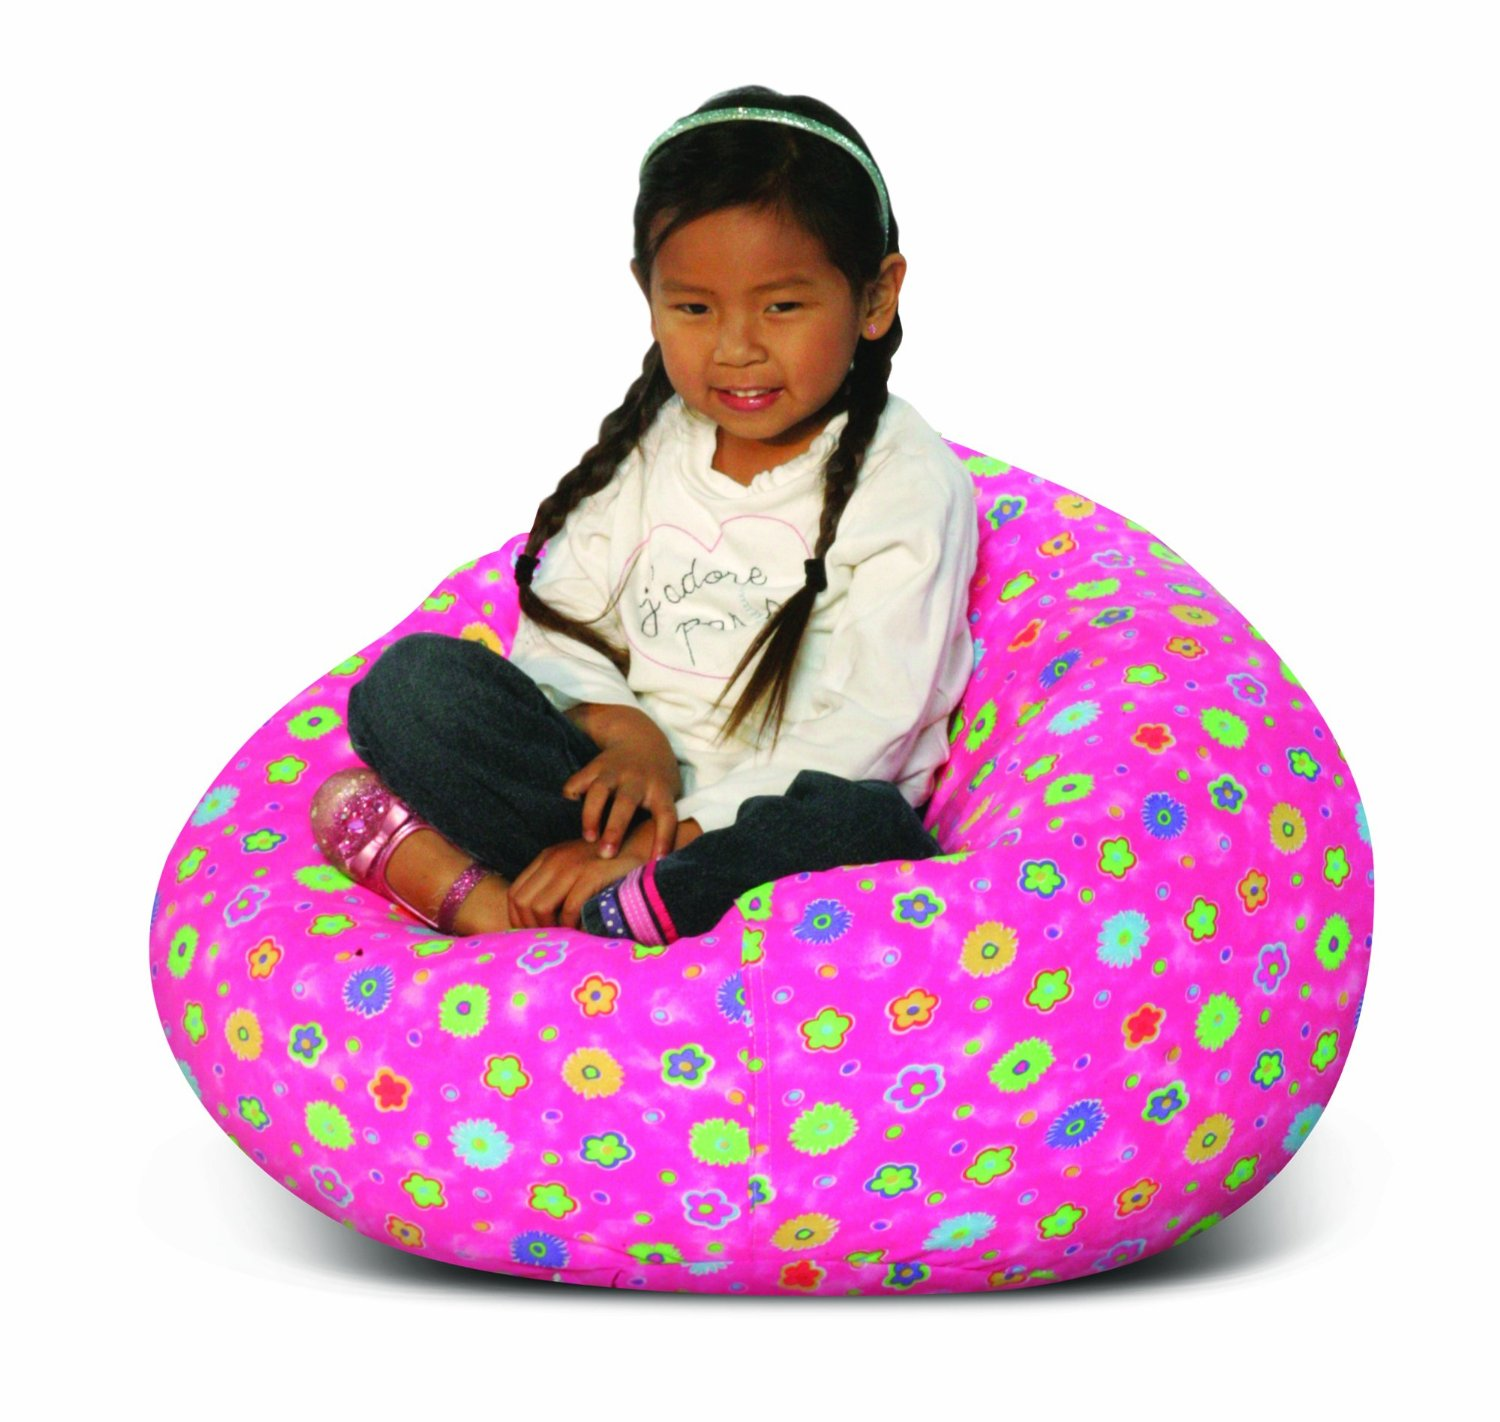 Bean Bag Chair For Kids Top 10 Best Bean Bag Chairs For Kids Reviews 2018